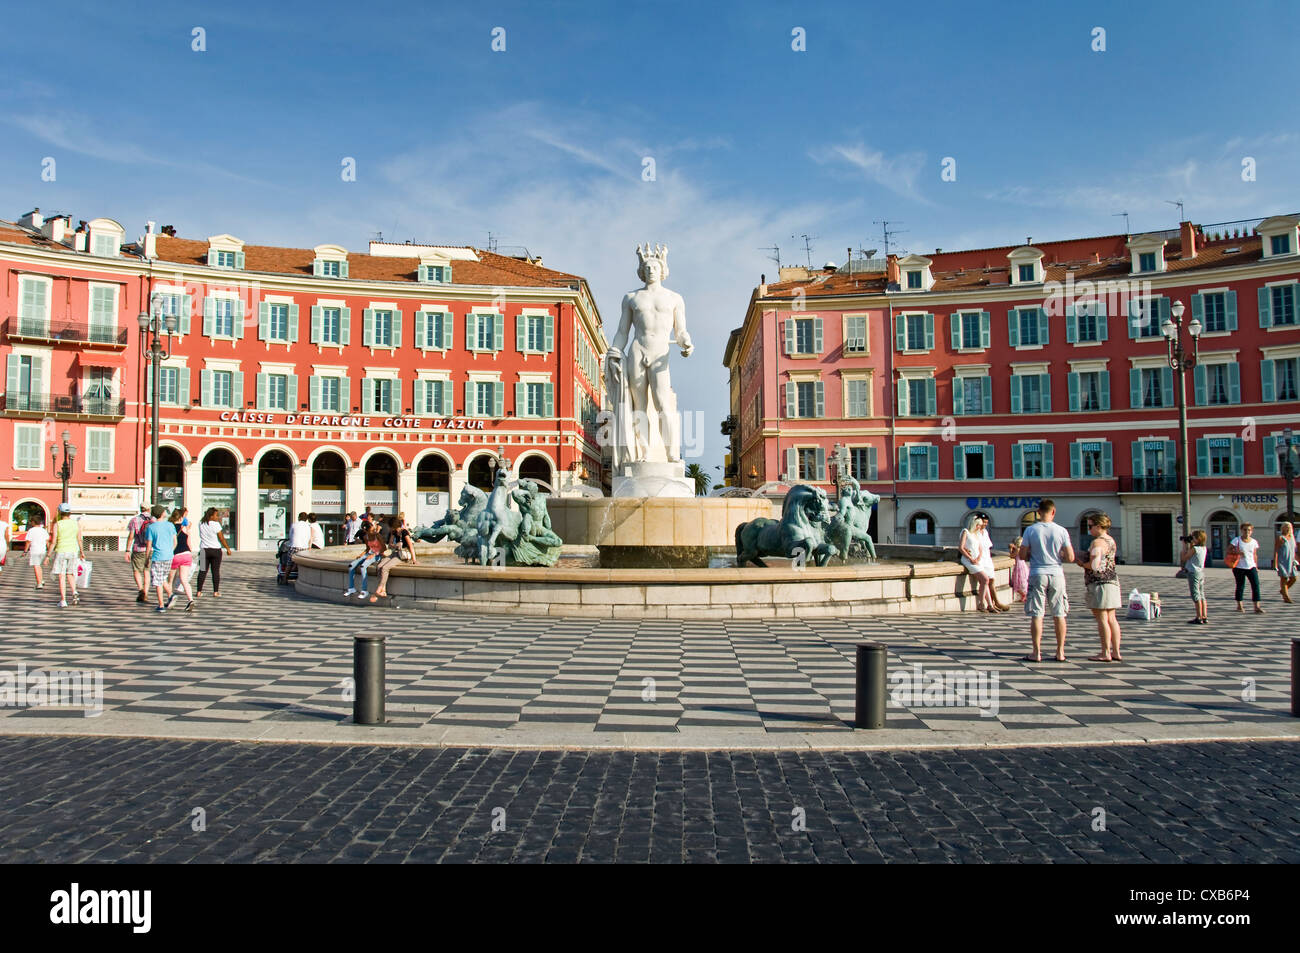 Fontaine du soleil (fountain of the sun), place Masséna - Nice, France - Stock Image